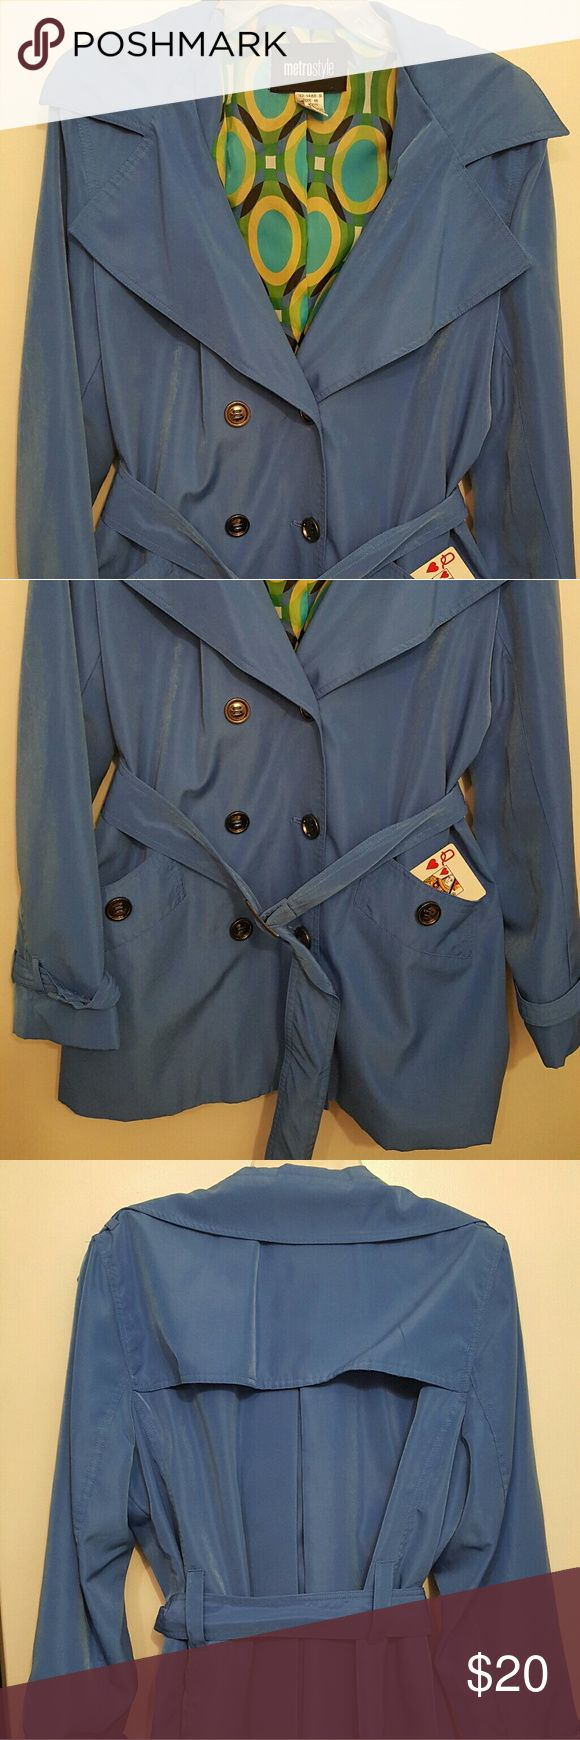 NWOT Blue Raincoat NWOT Blue Raincoat  First 2 pics are the whole front. Button and belt closure. Metrostyle Jackets & Coats Trench Coats